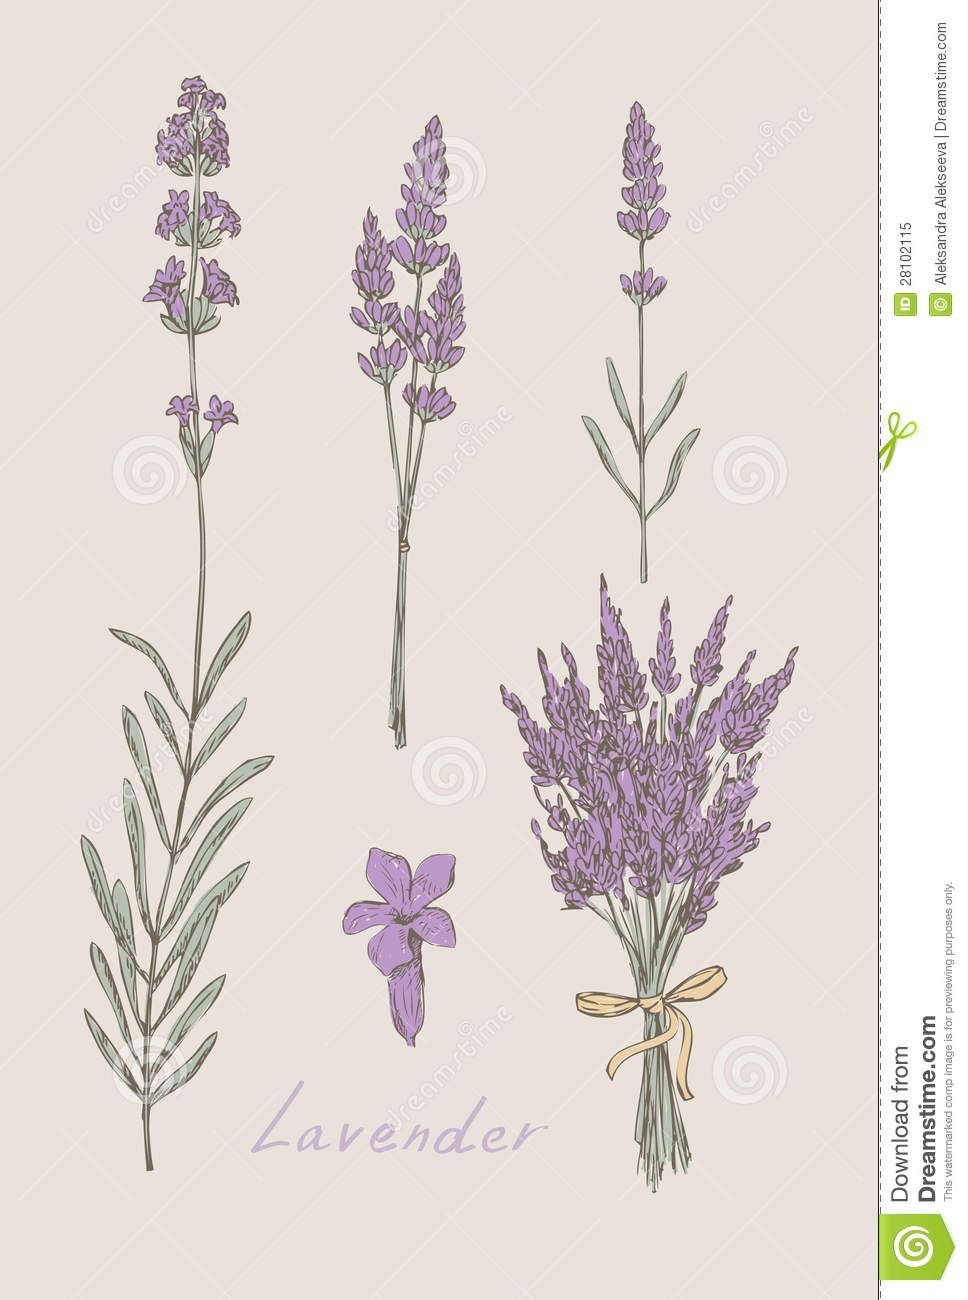 Line Drawing Lavender : Lavender botanical drawing google search musings